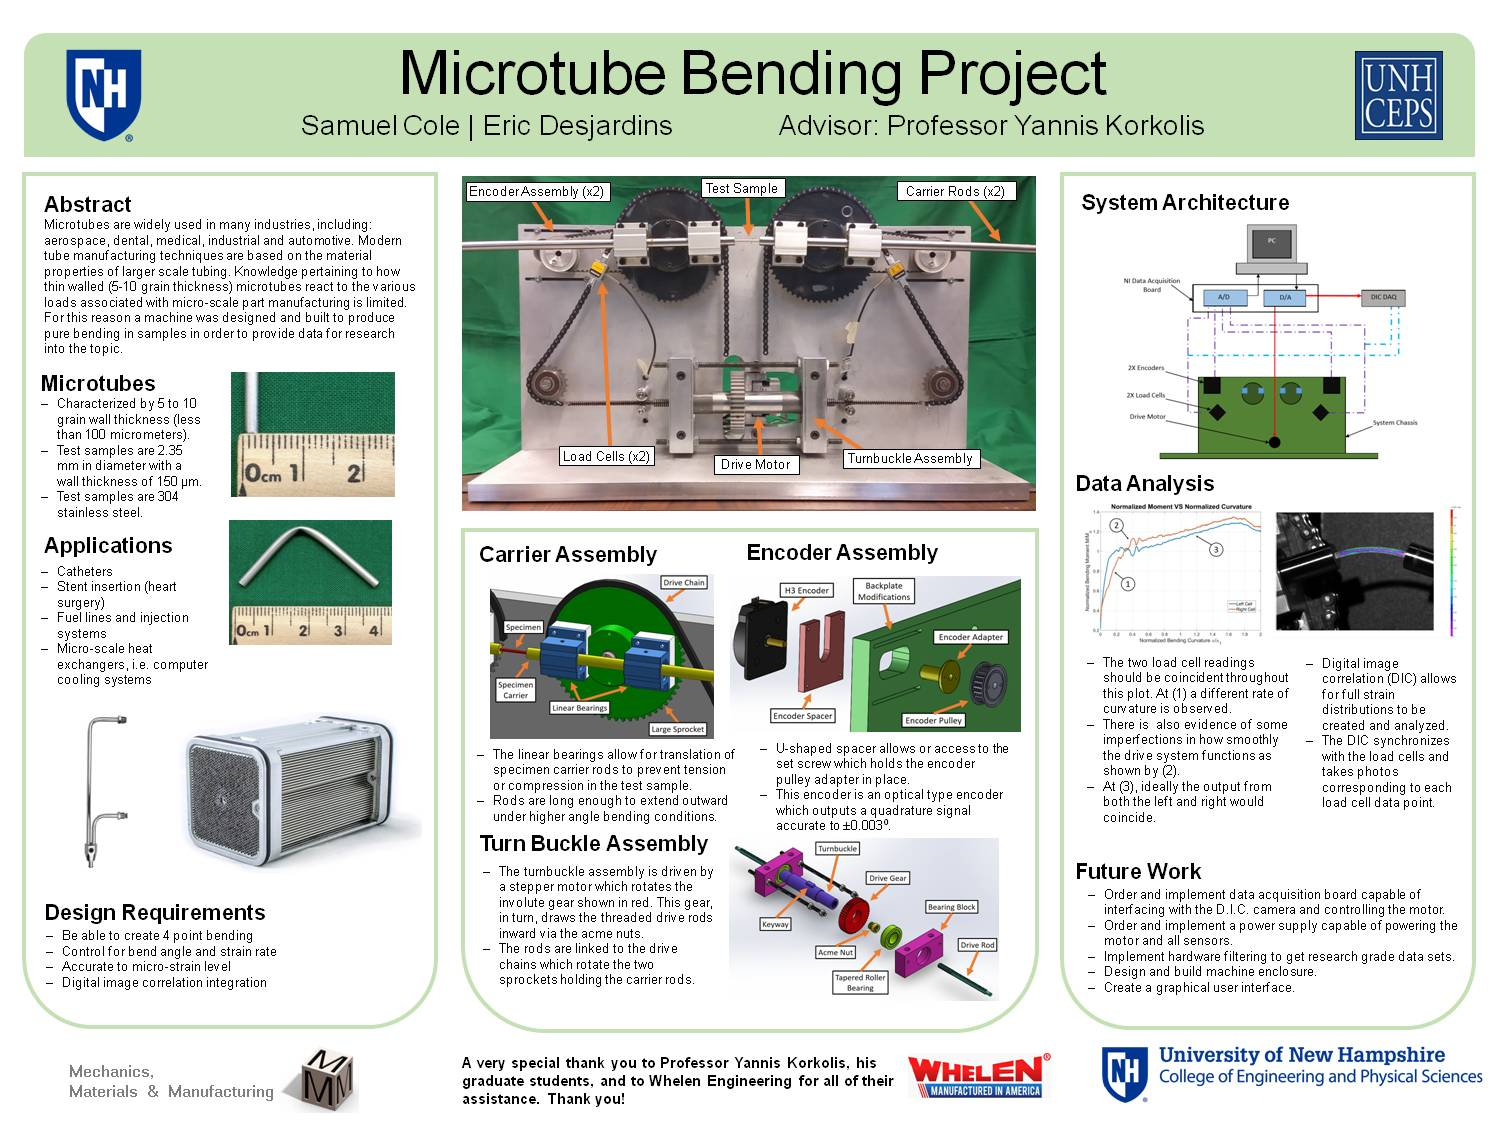 Microtube Bending Project by sbm34